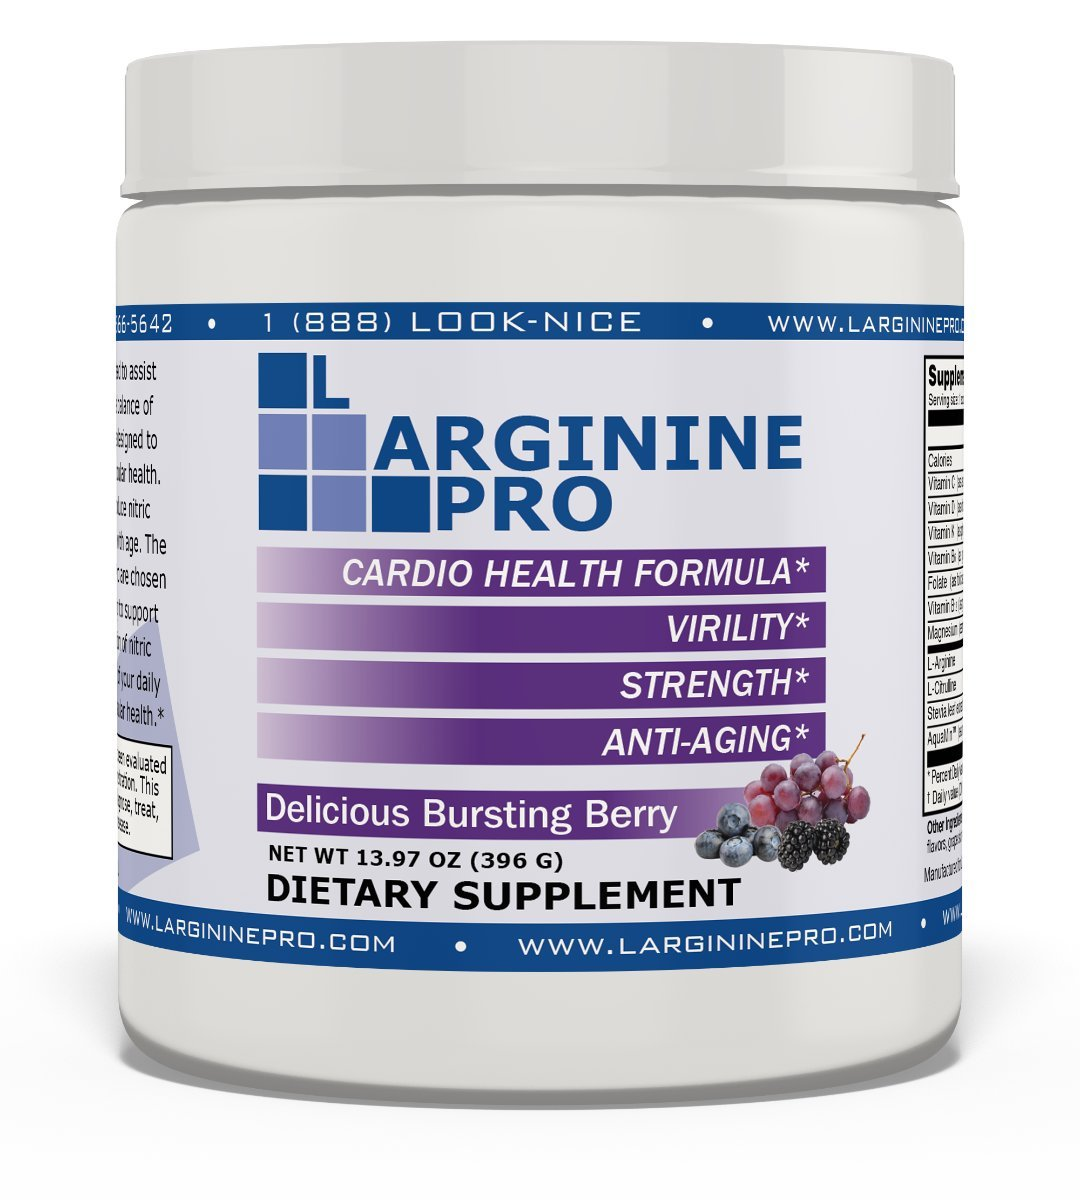 L-arginine Pro, 1 NOW L-arginine Supplement 5,500mg of L-arginine PLUS 1,100mg L-Citrulline Vitamins Minerals for Cardio Health, Blood Pressure, Cholesterol, Energy, Sleep, 13.97 oz